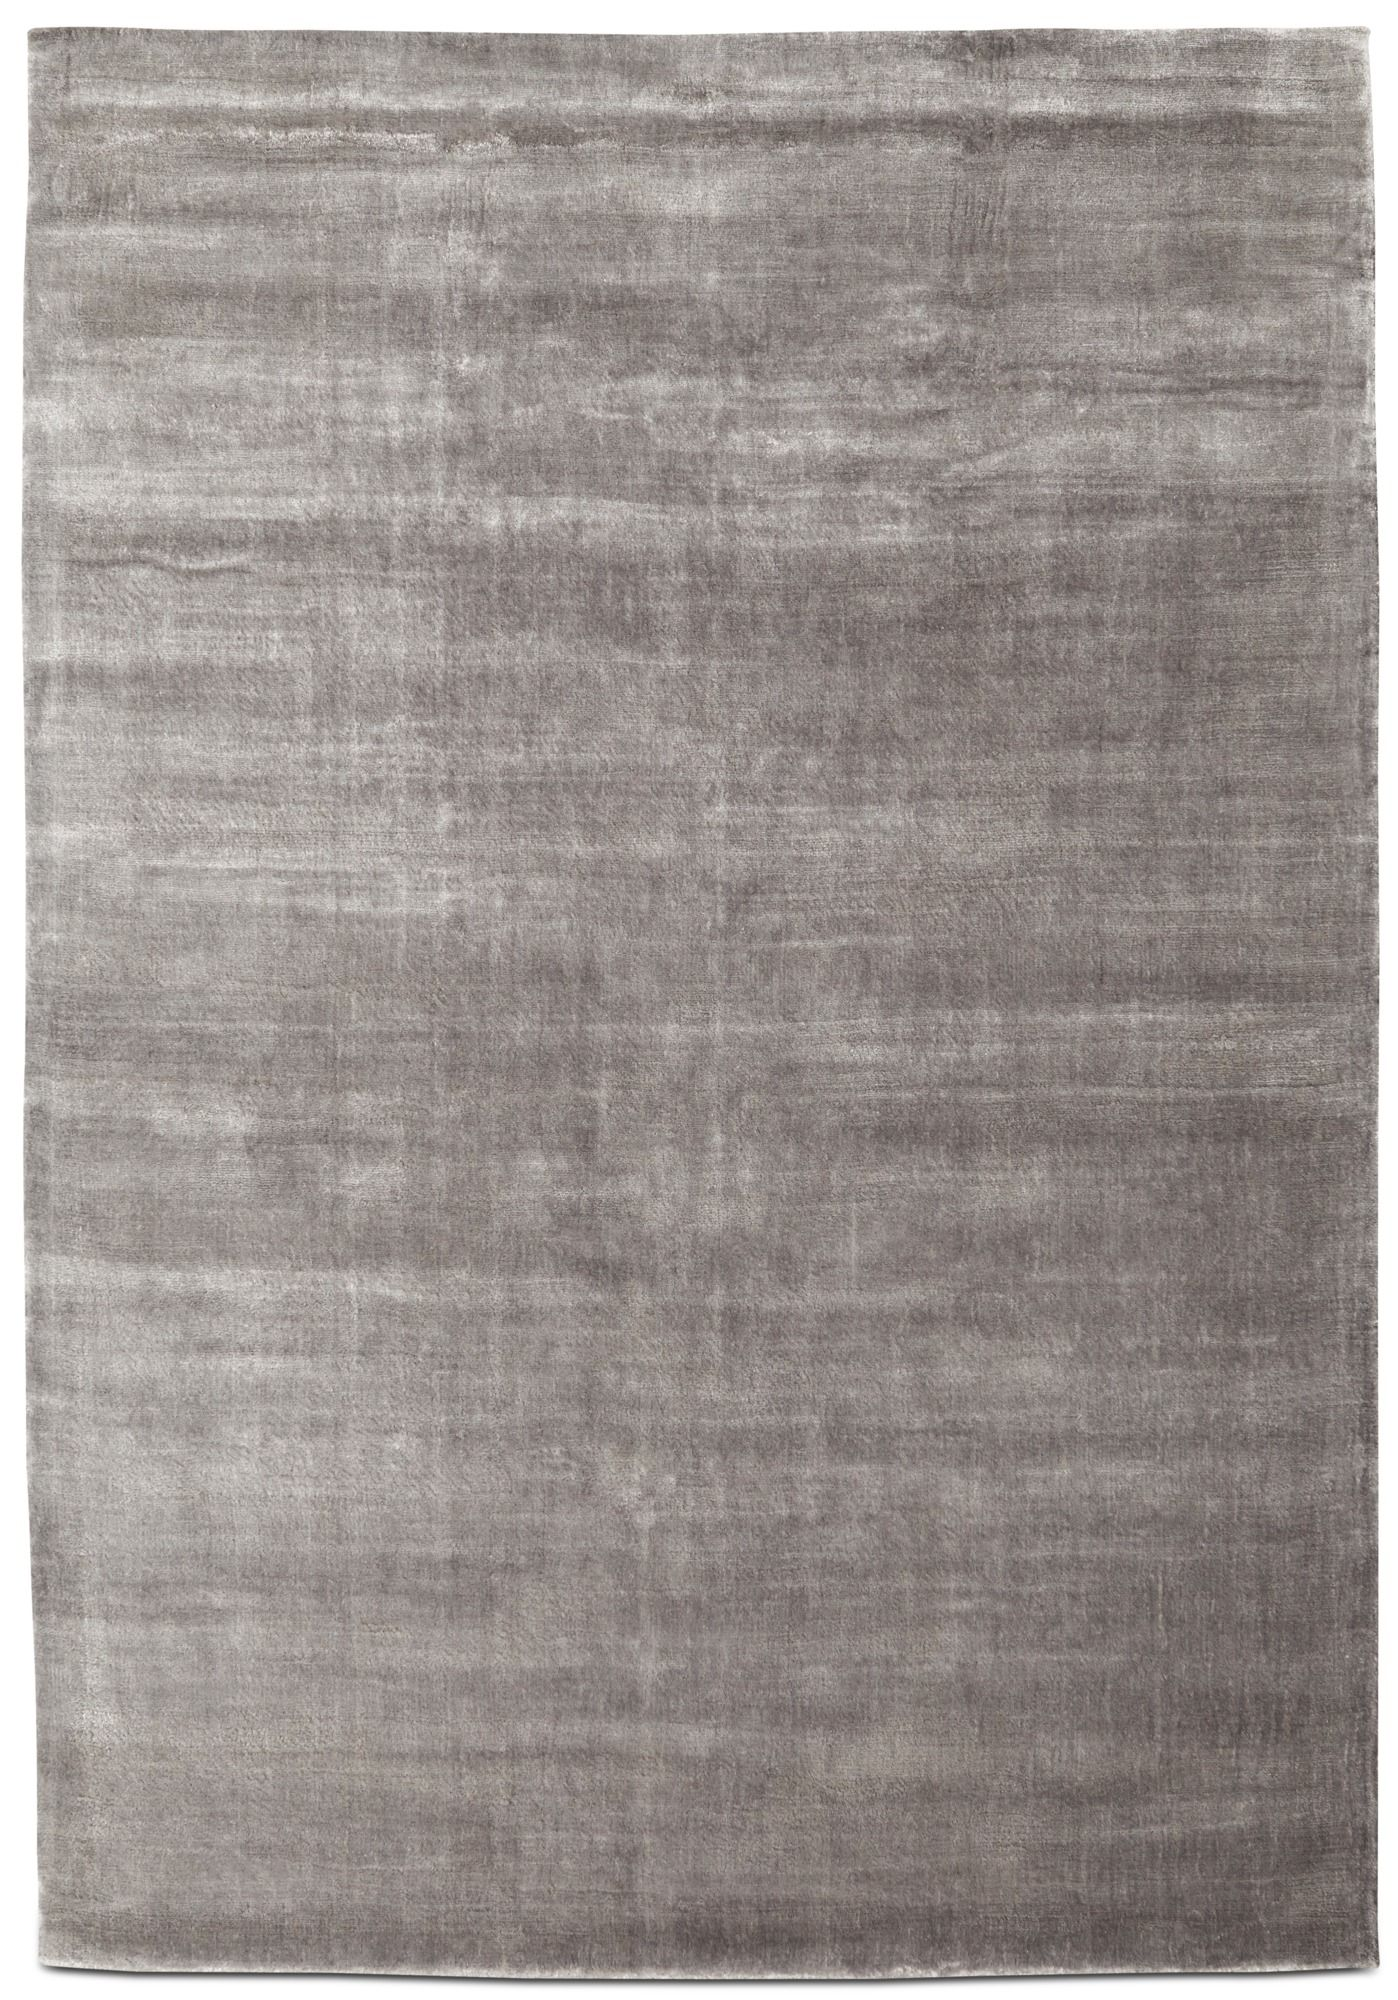 rug morrocan white area modern rugs teens bedroom dp for and living grey trellis contemporary amazon room luxury com gray